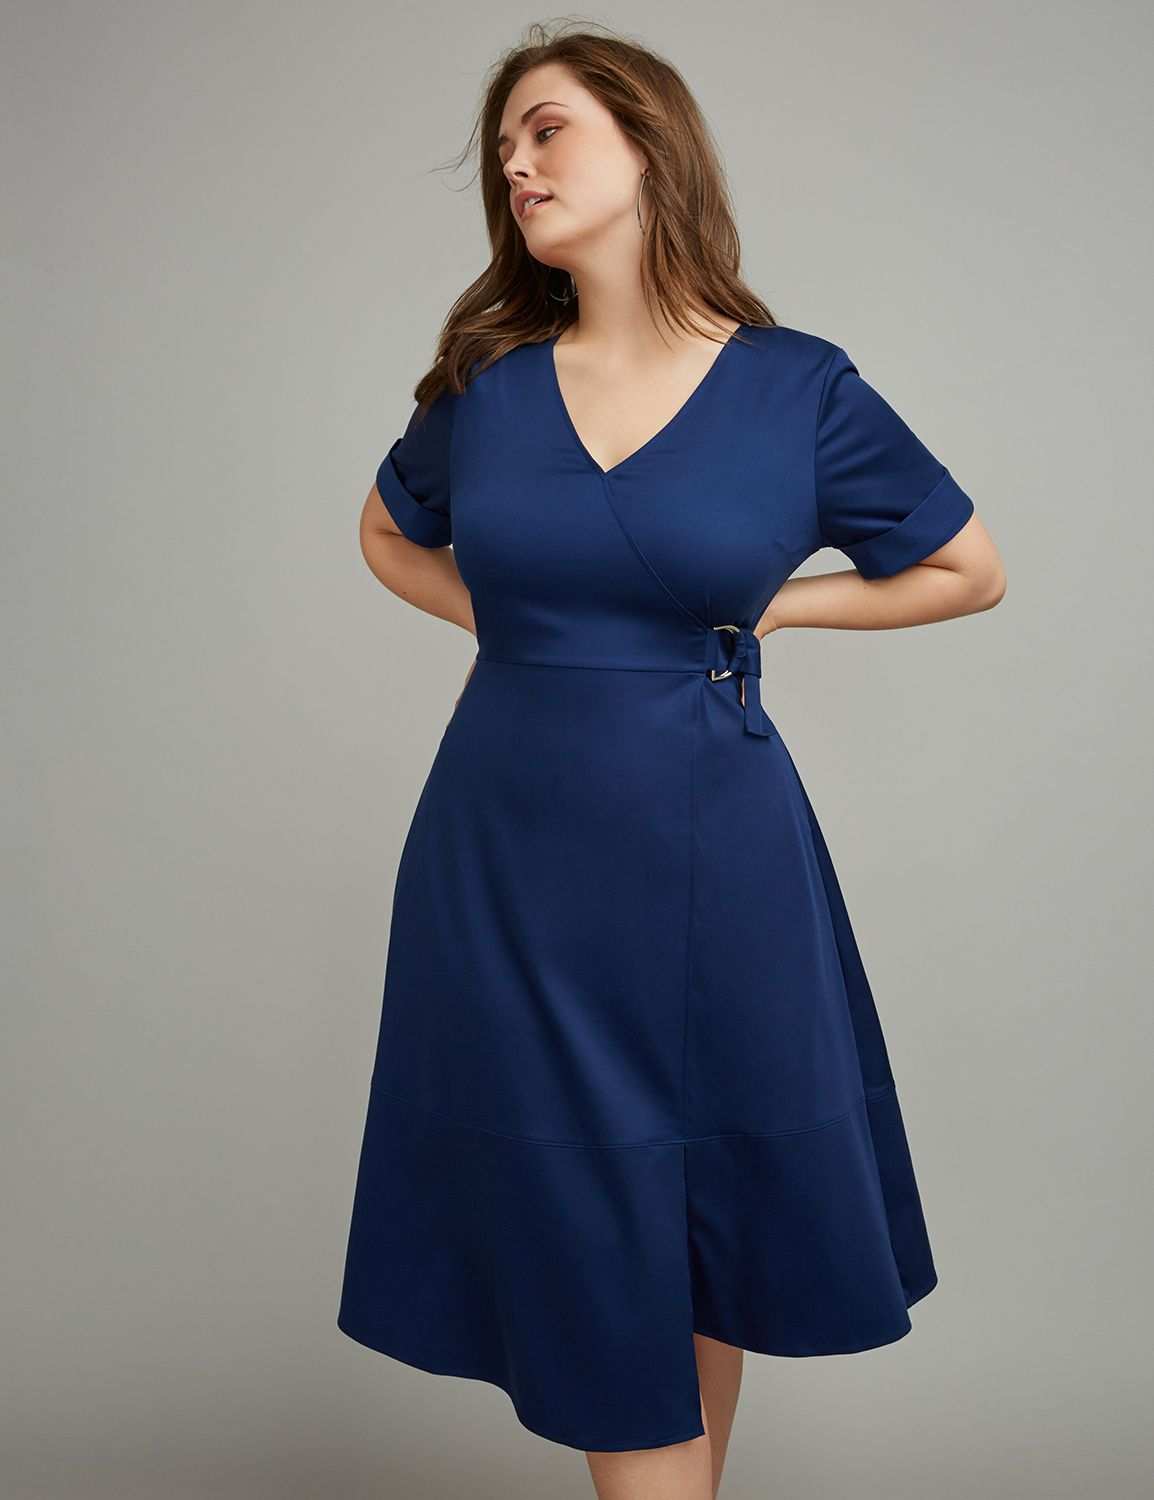 1a4dc8eff34 1940s Plus Size Fashion Style Advice From 1940s To Today